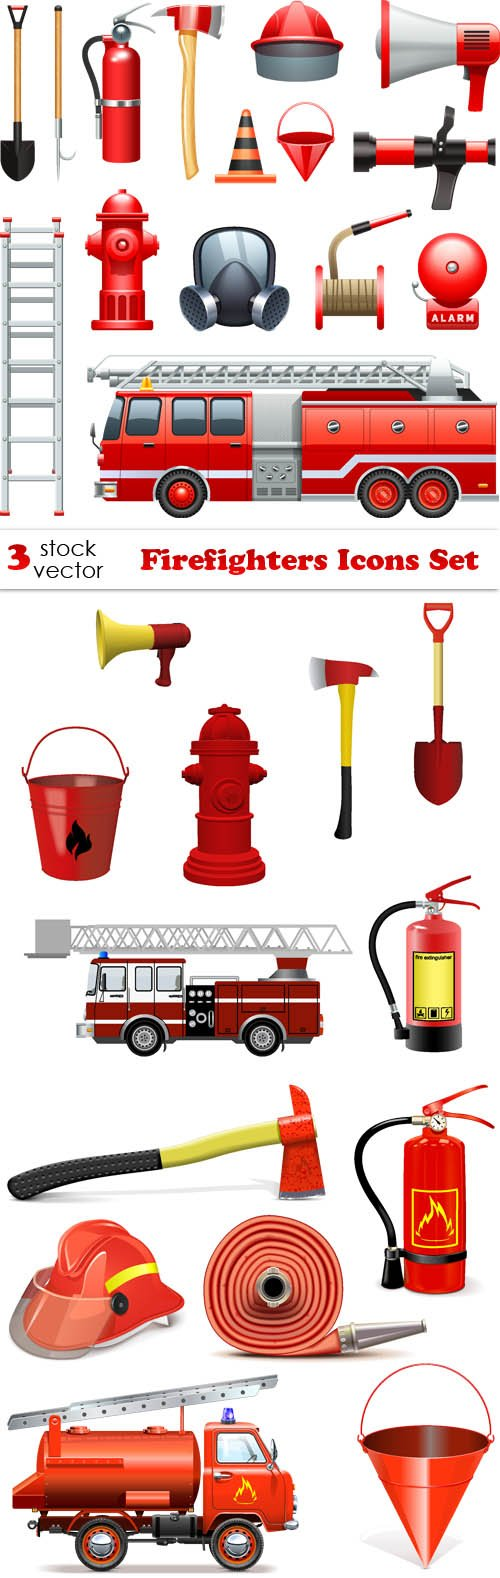 Vectors - Firefighters Icons Set